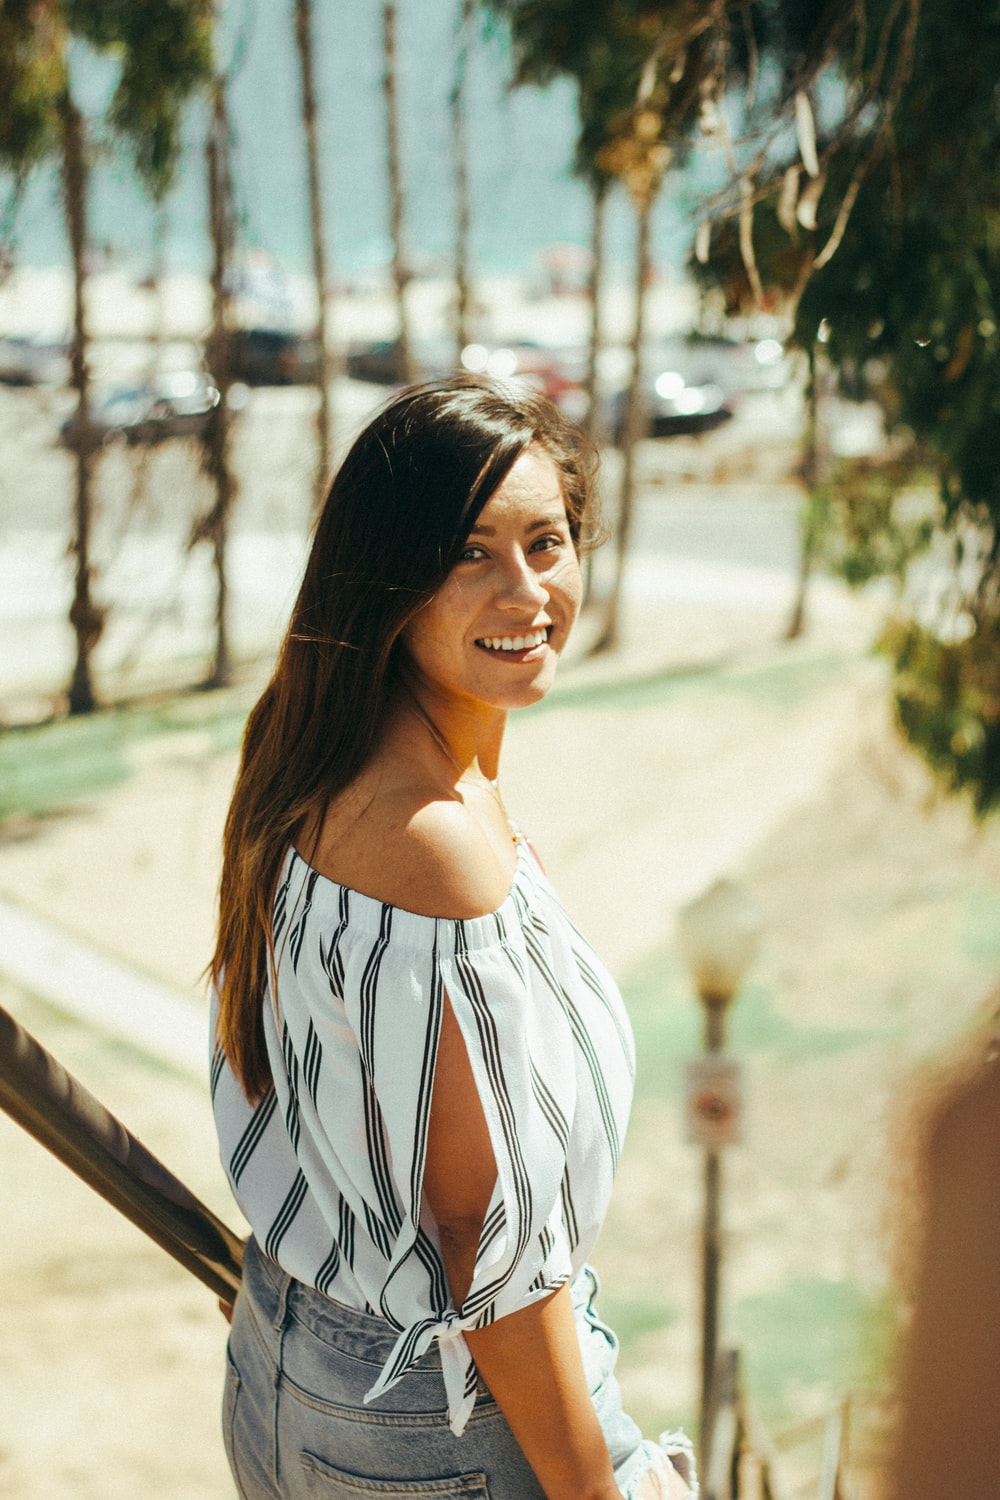 smiling woman standing beside handrails during daytime